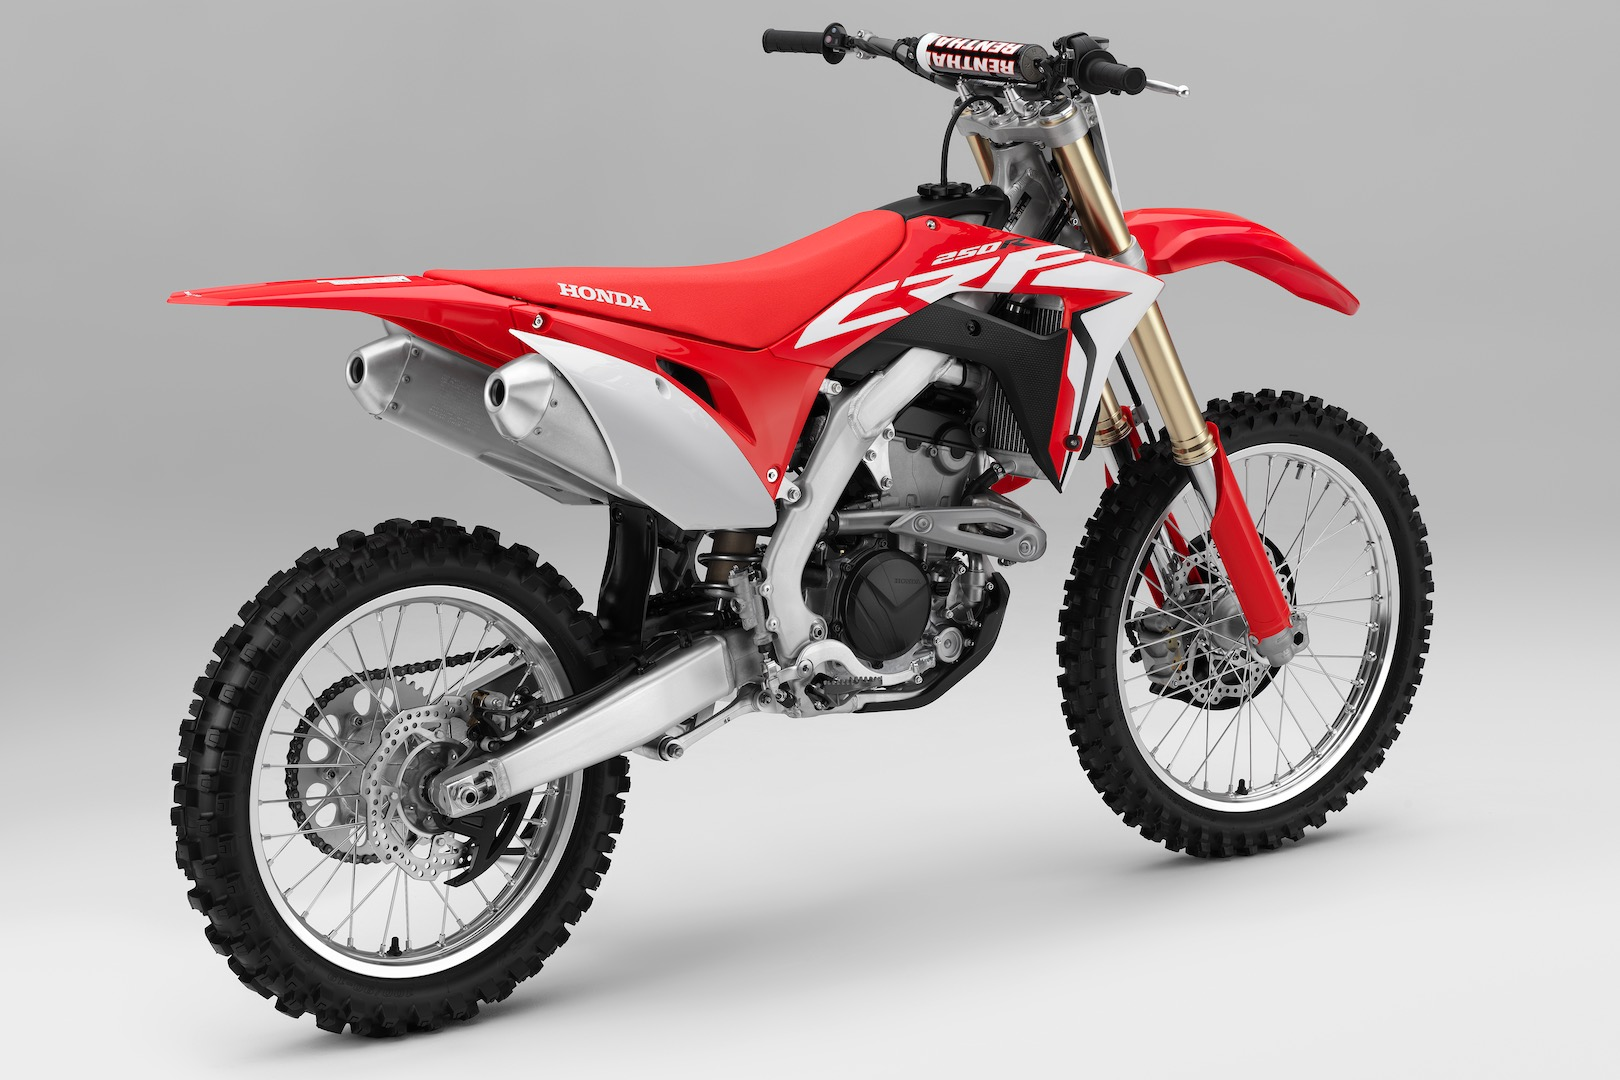 2018 honda crf250r first look 20 fast facts. Black Bedroom Furniture Sets. Home Design Ideas